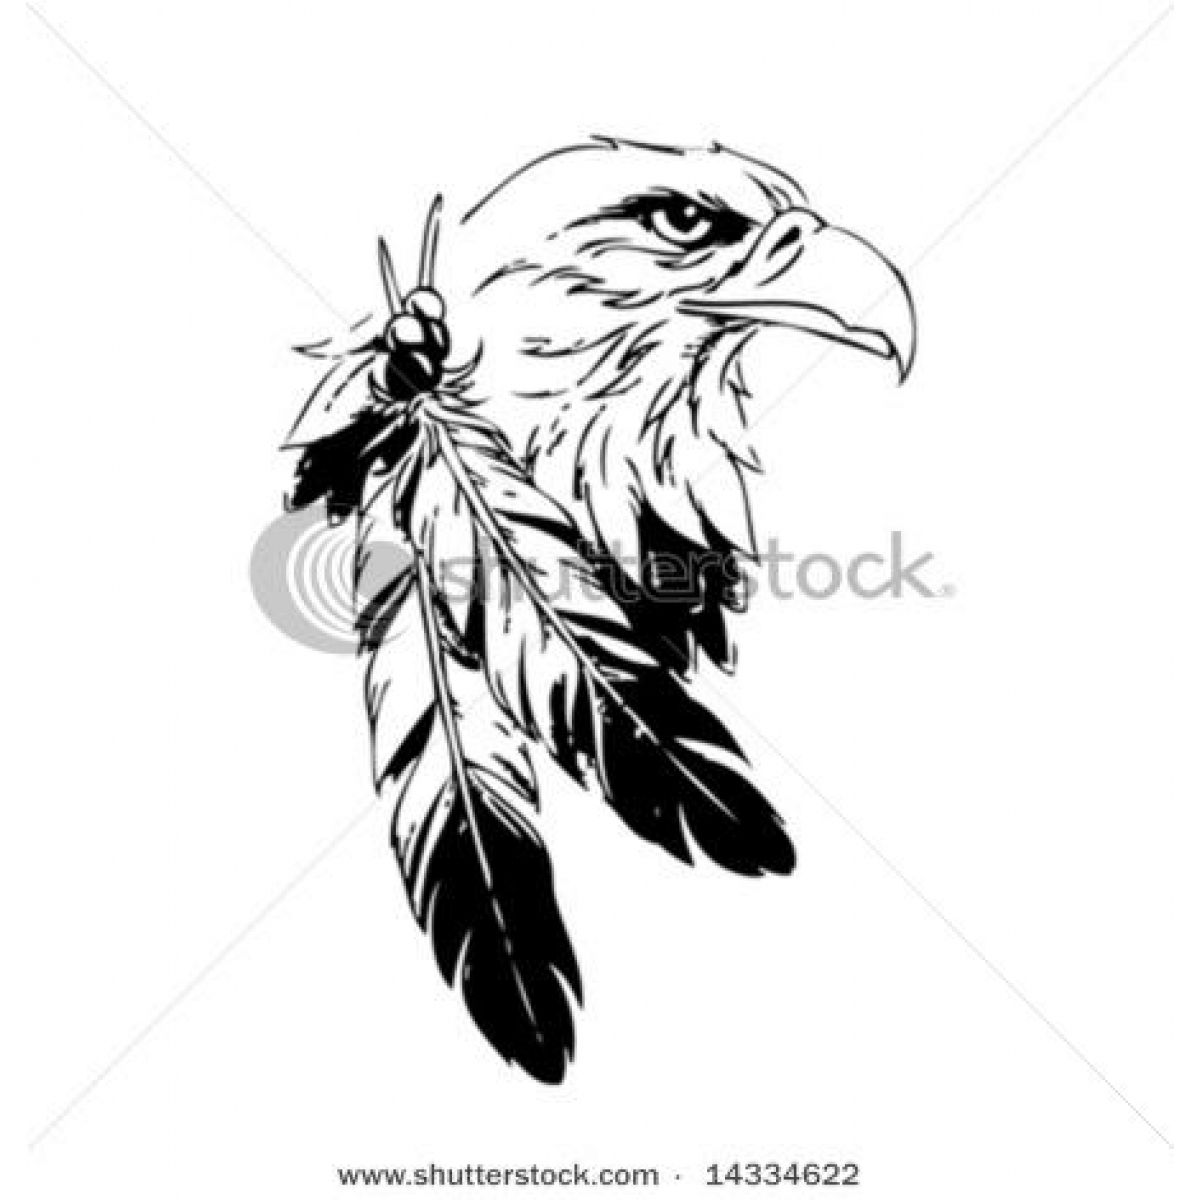 Native American Eagle Feather Drawings feathers on animal